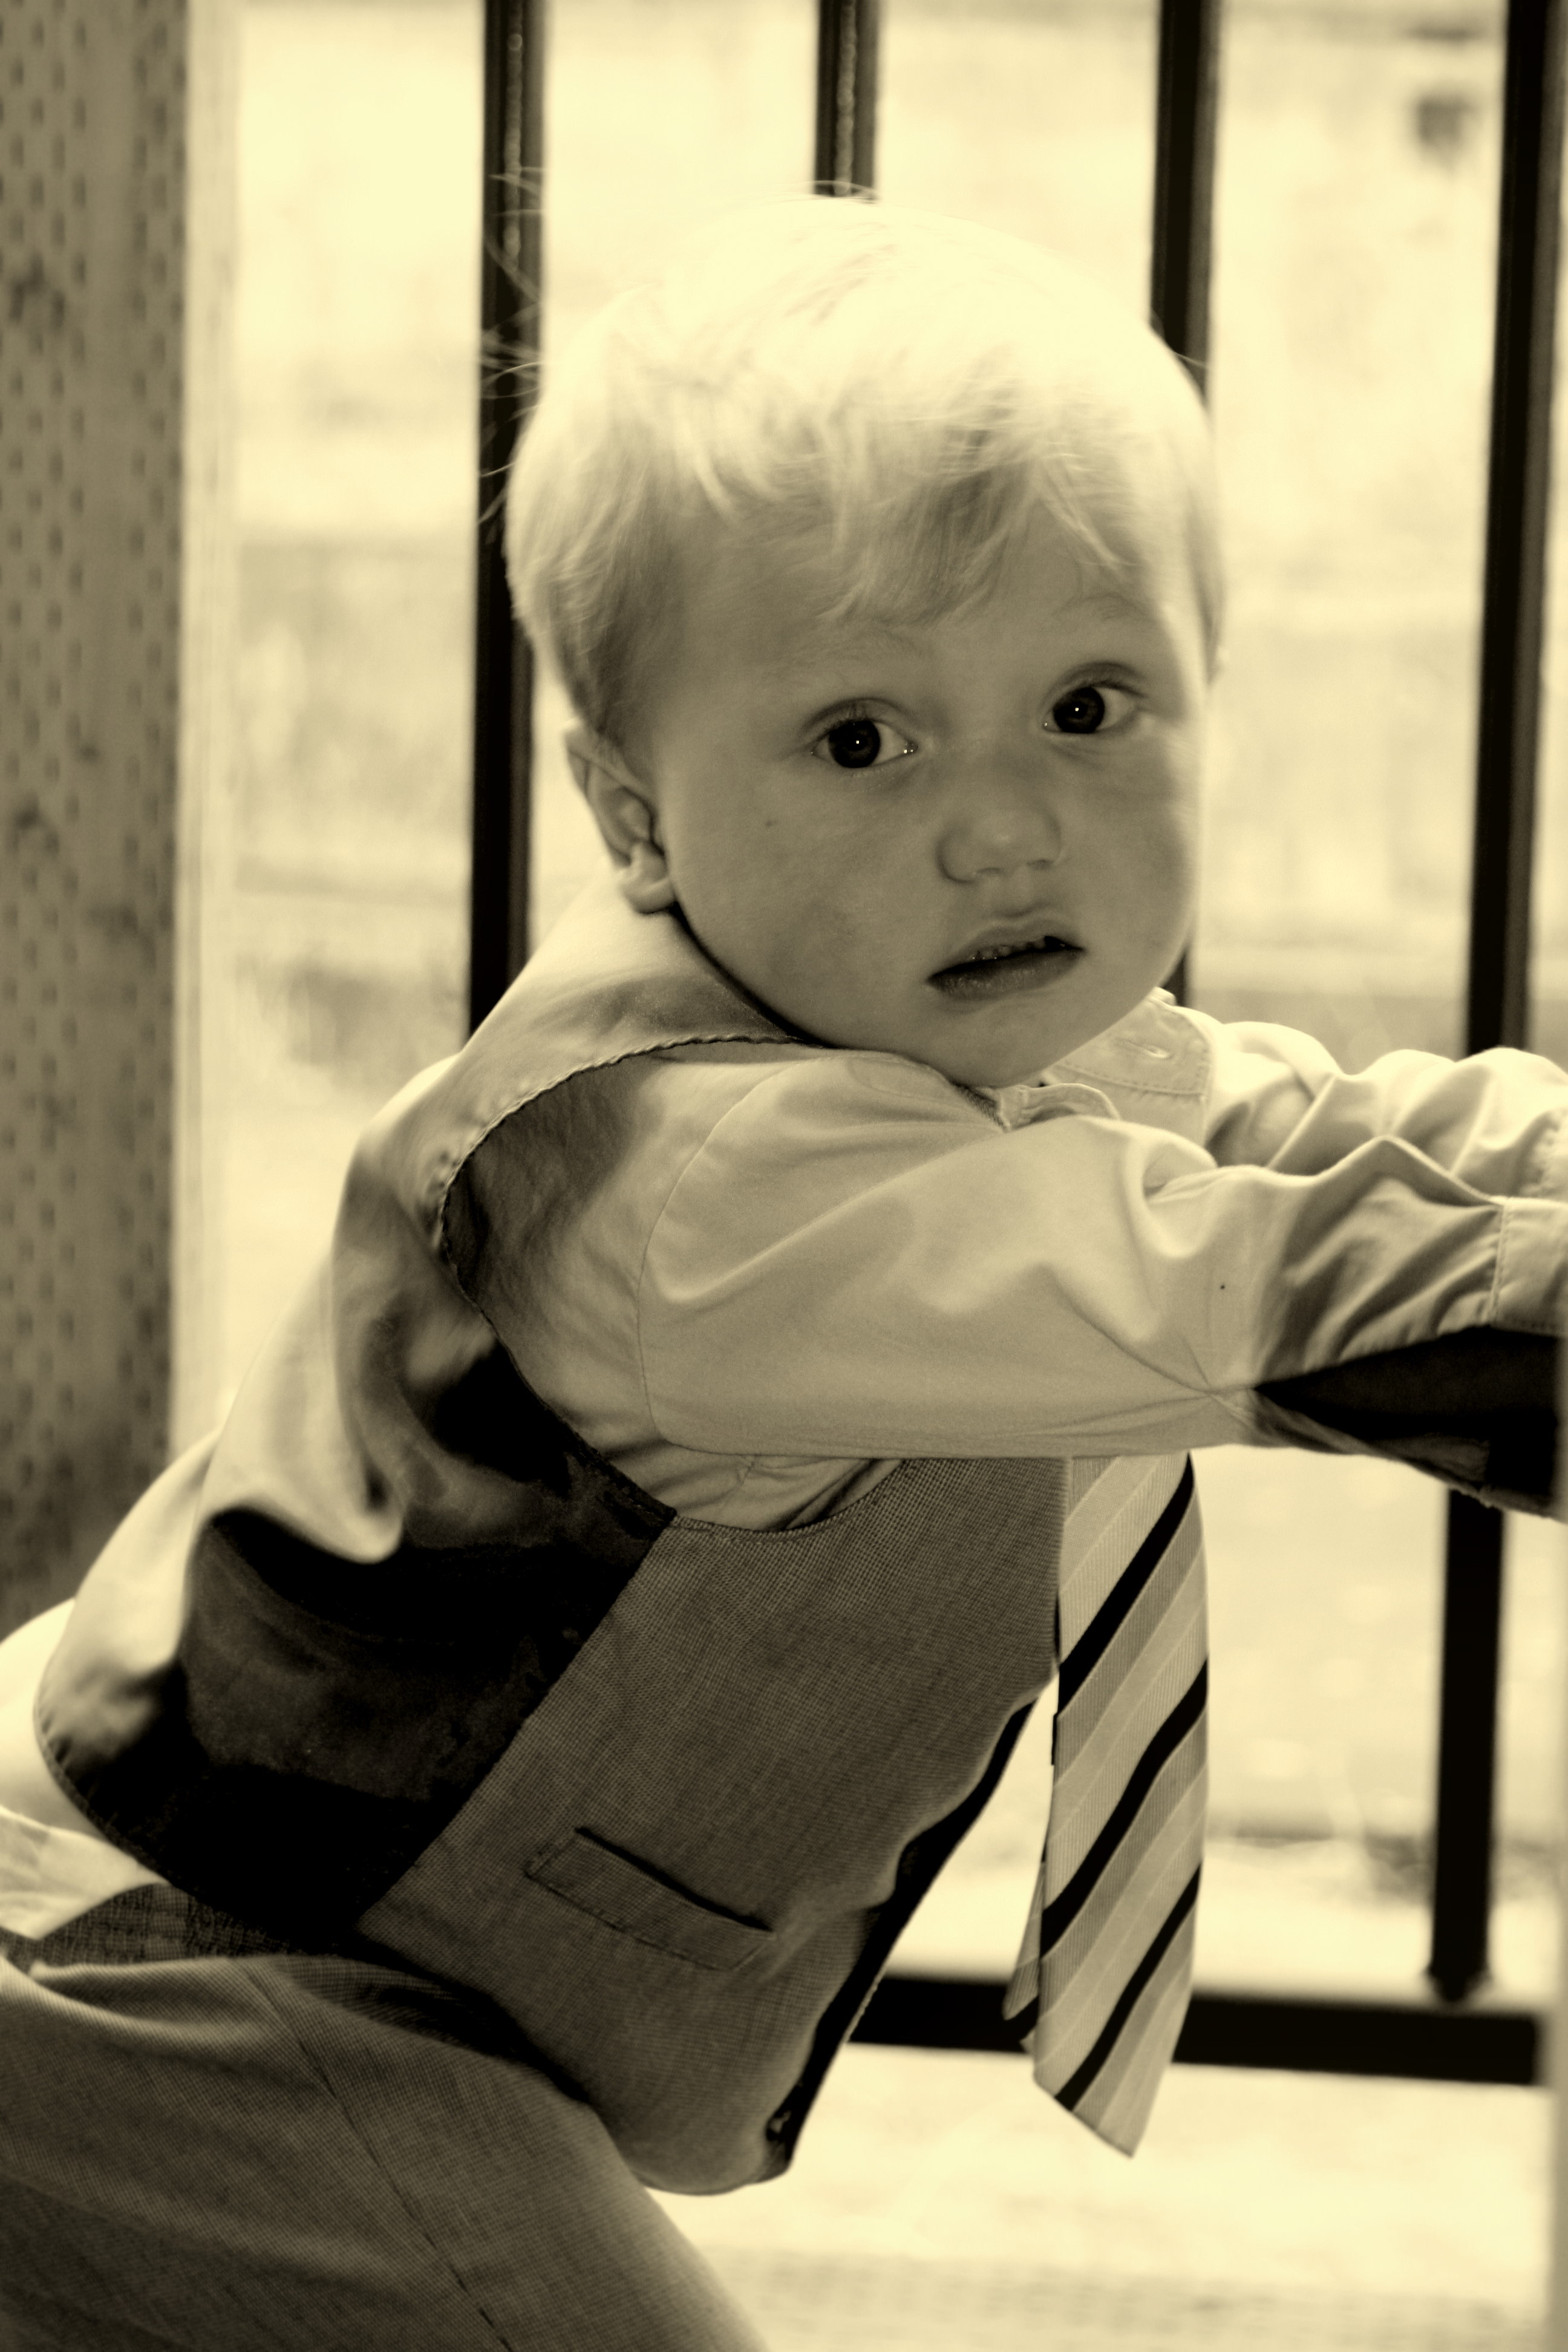 white, black, Ring, Bearer, Baby, Children, Sepia, K mycia photography